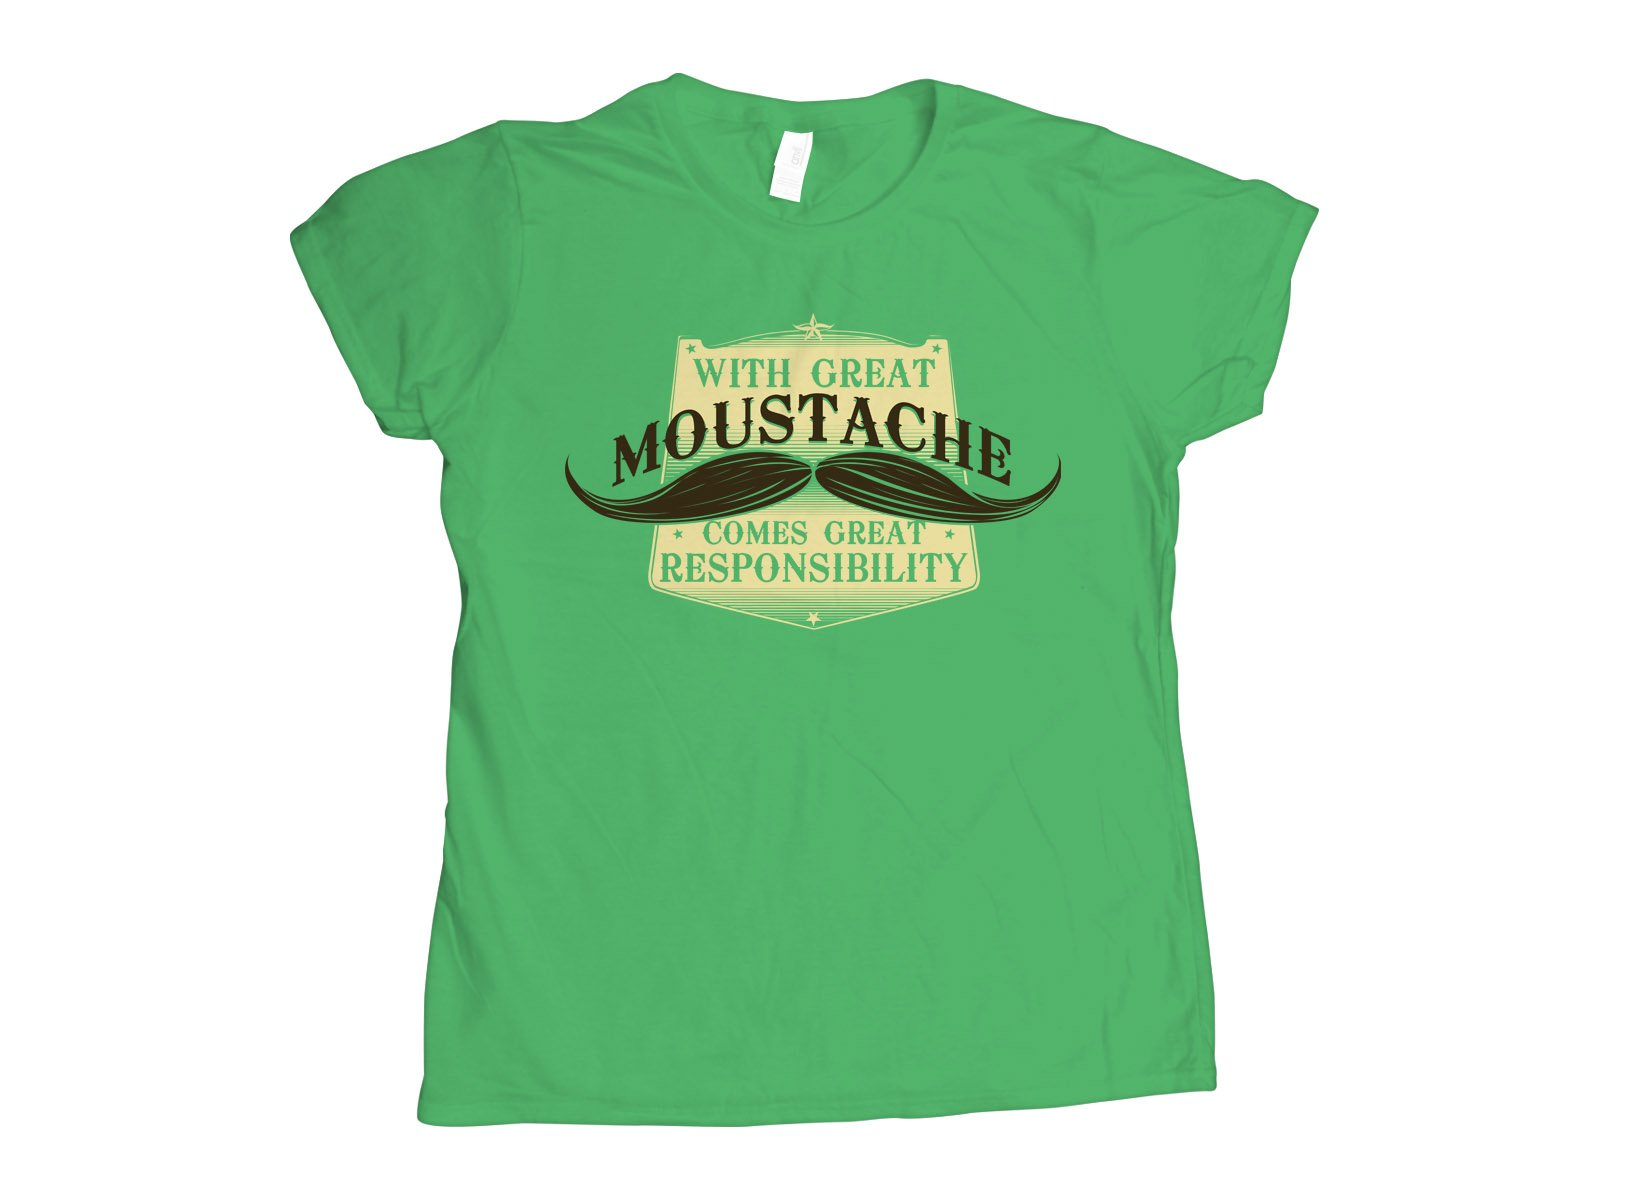 With Great Moustache on Womens T-Shirt